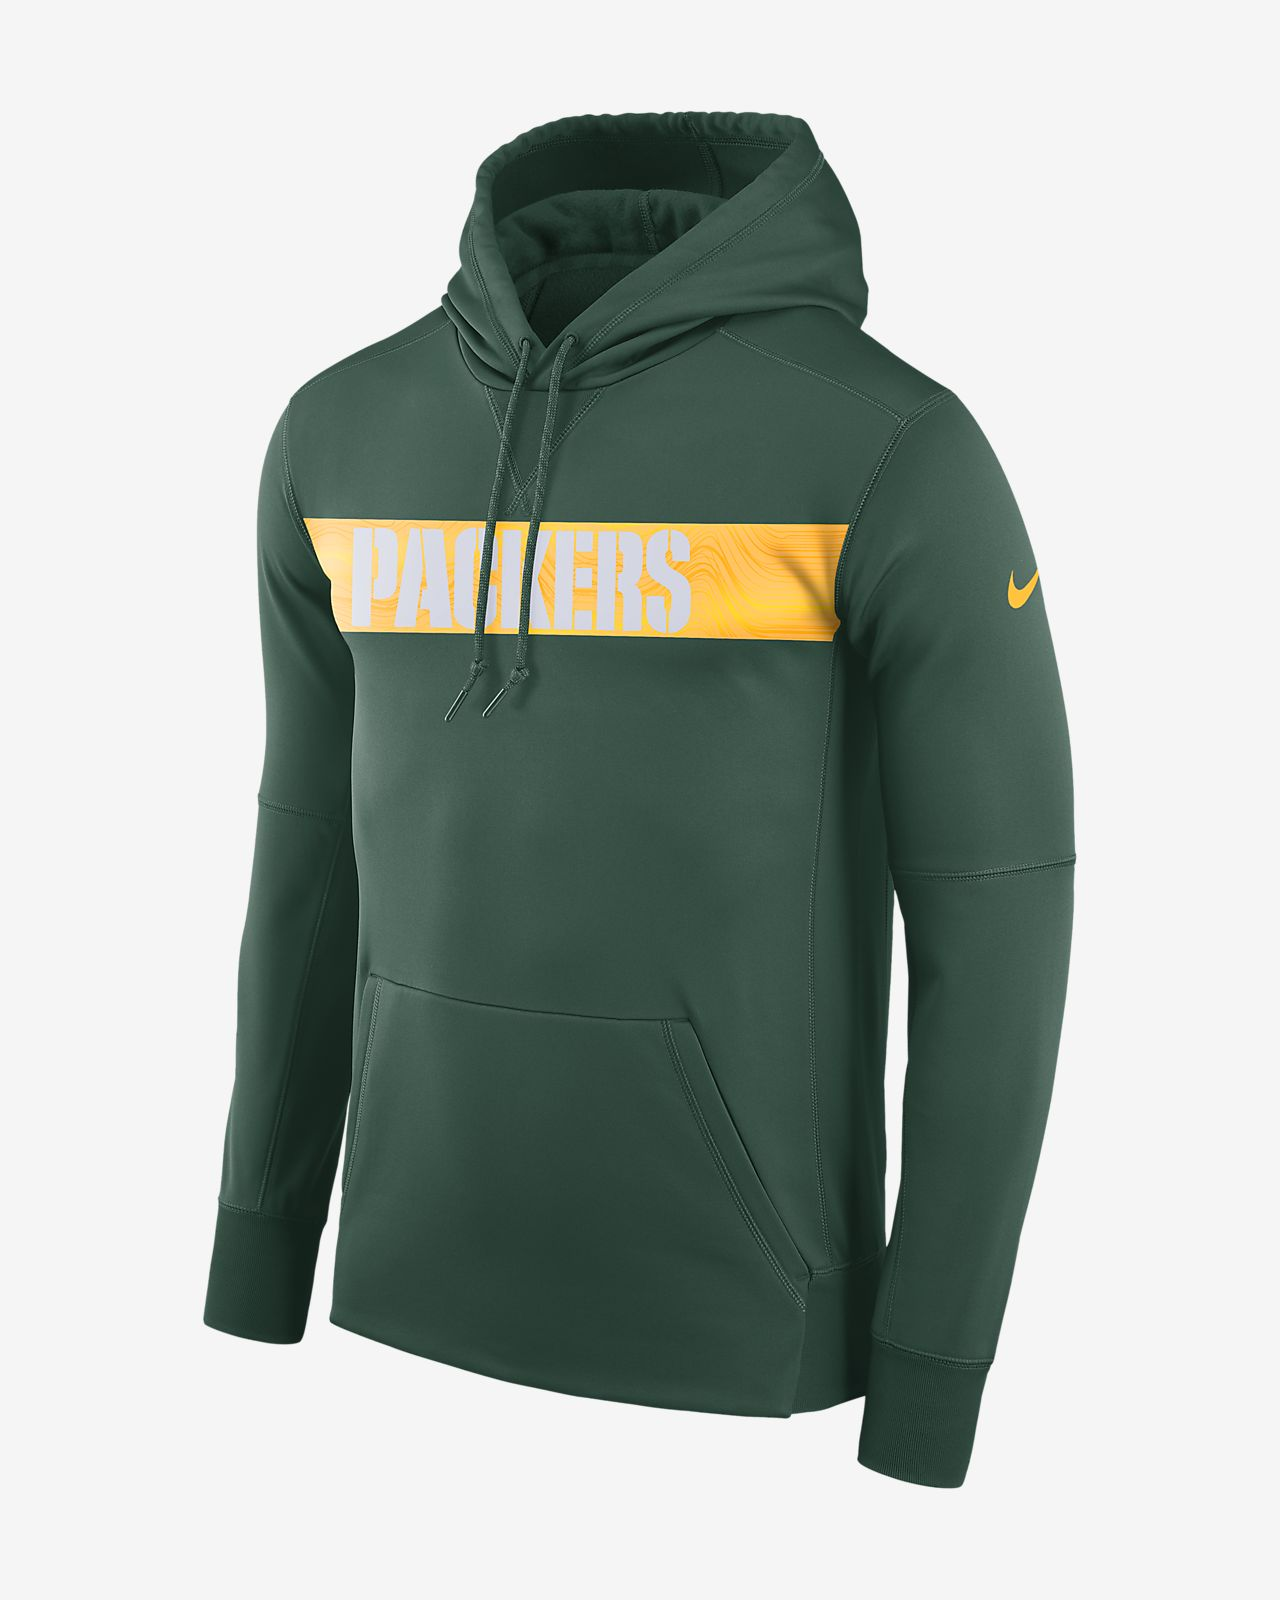 Nike Dri-FIT Therma (NFL Packers) Men's Pullover Hoodie